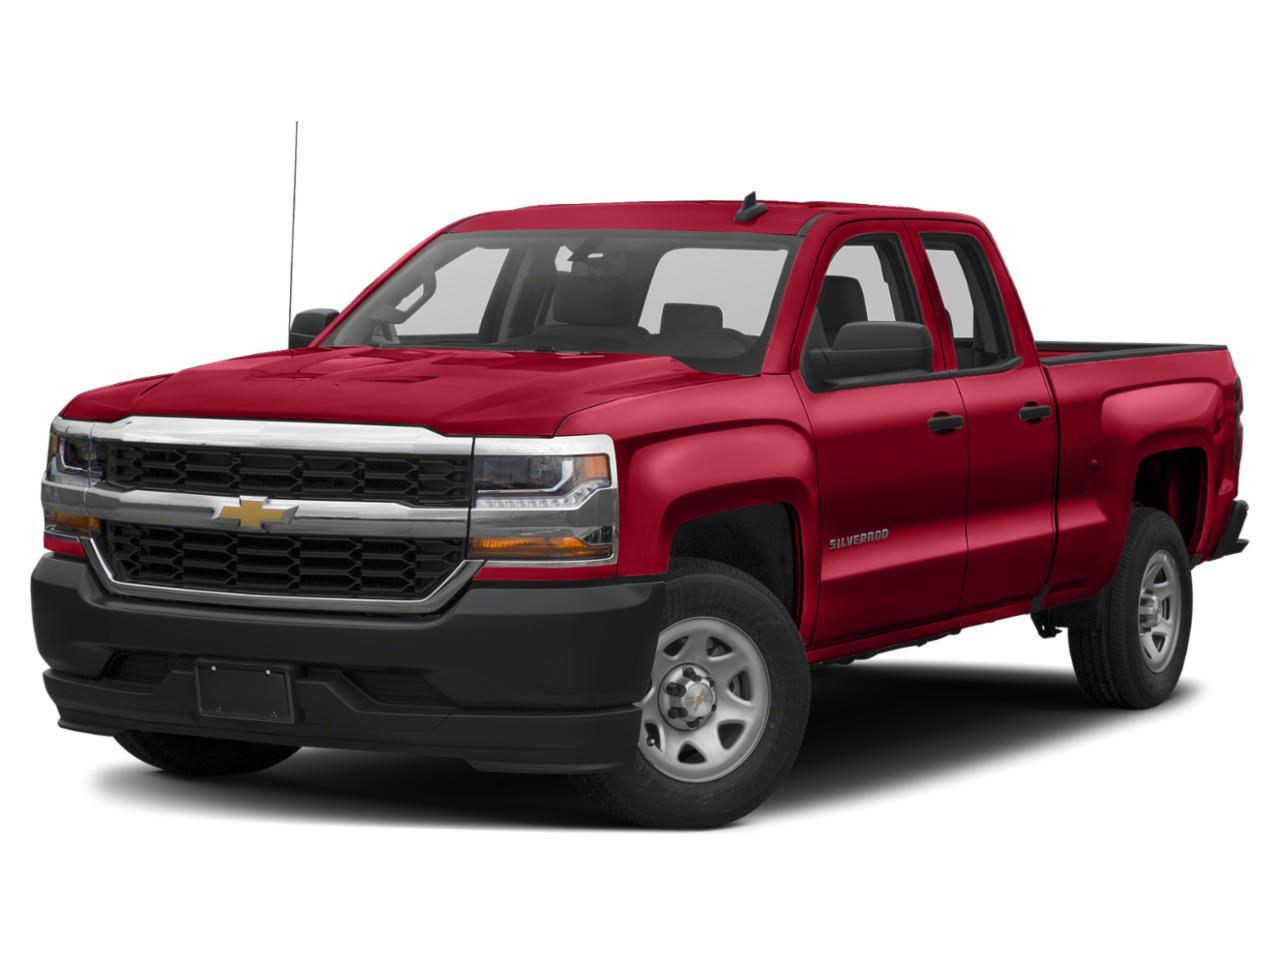 2019 Chevrolet Silverado 1500 LD Vehicle Photo in Pittsburg, CA 94565